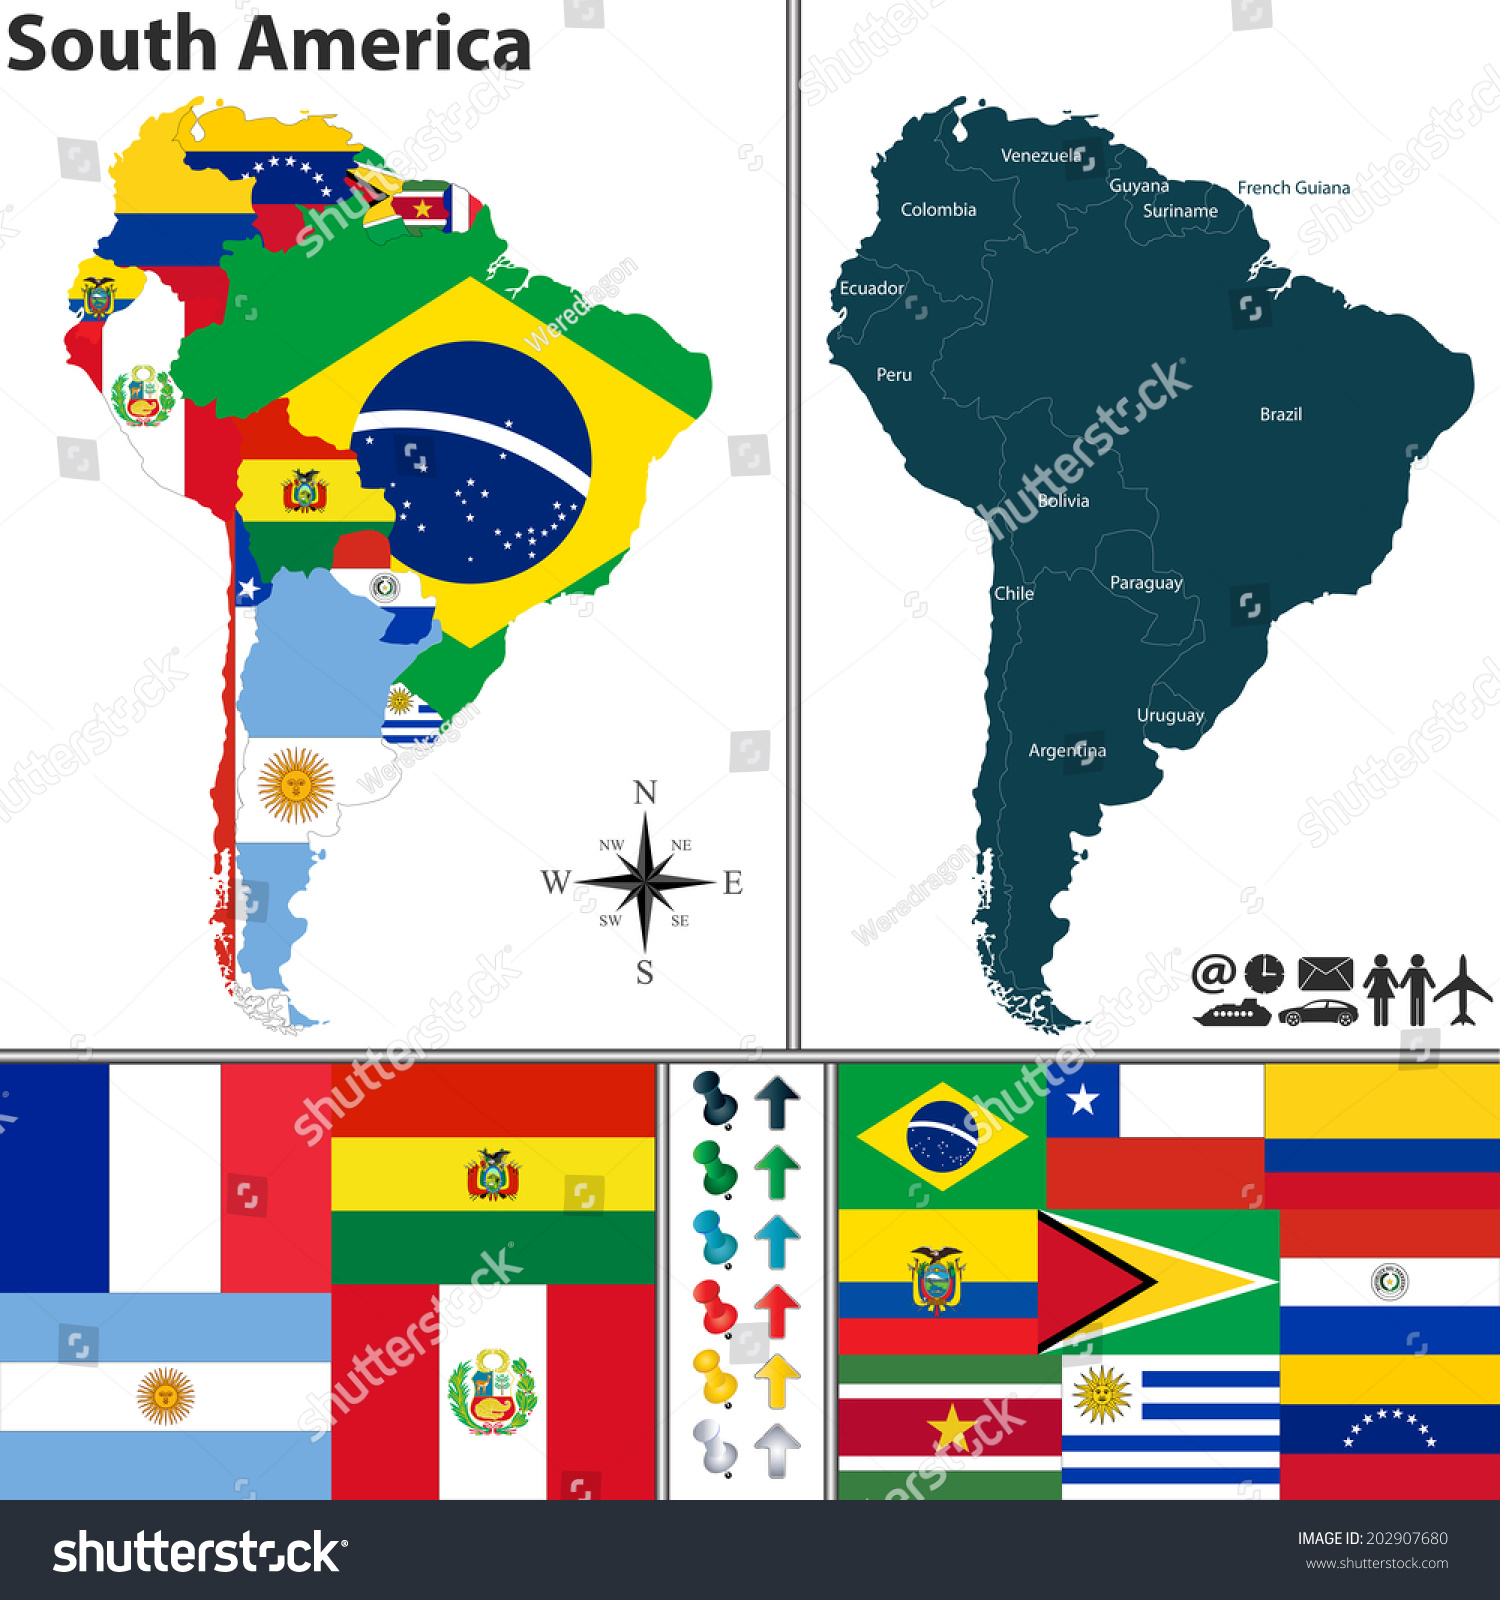 Vector map south america flags location vectores en stock 202907680 vector map of south america with flags and location on world map gumiabroncs Choice Image